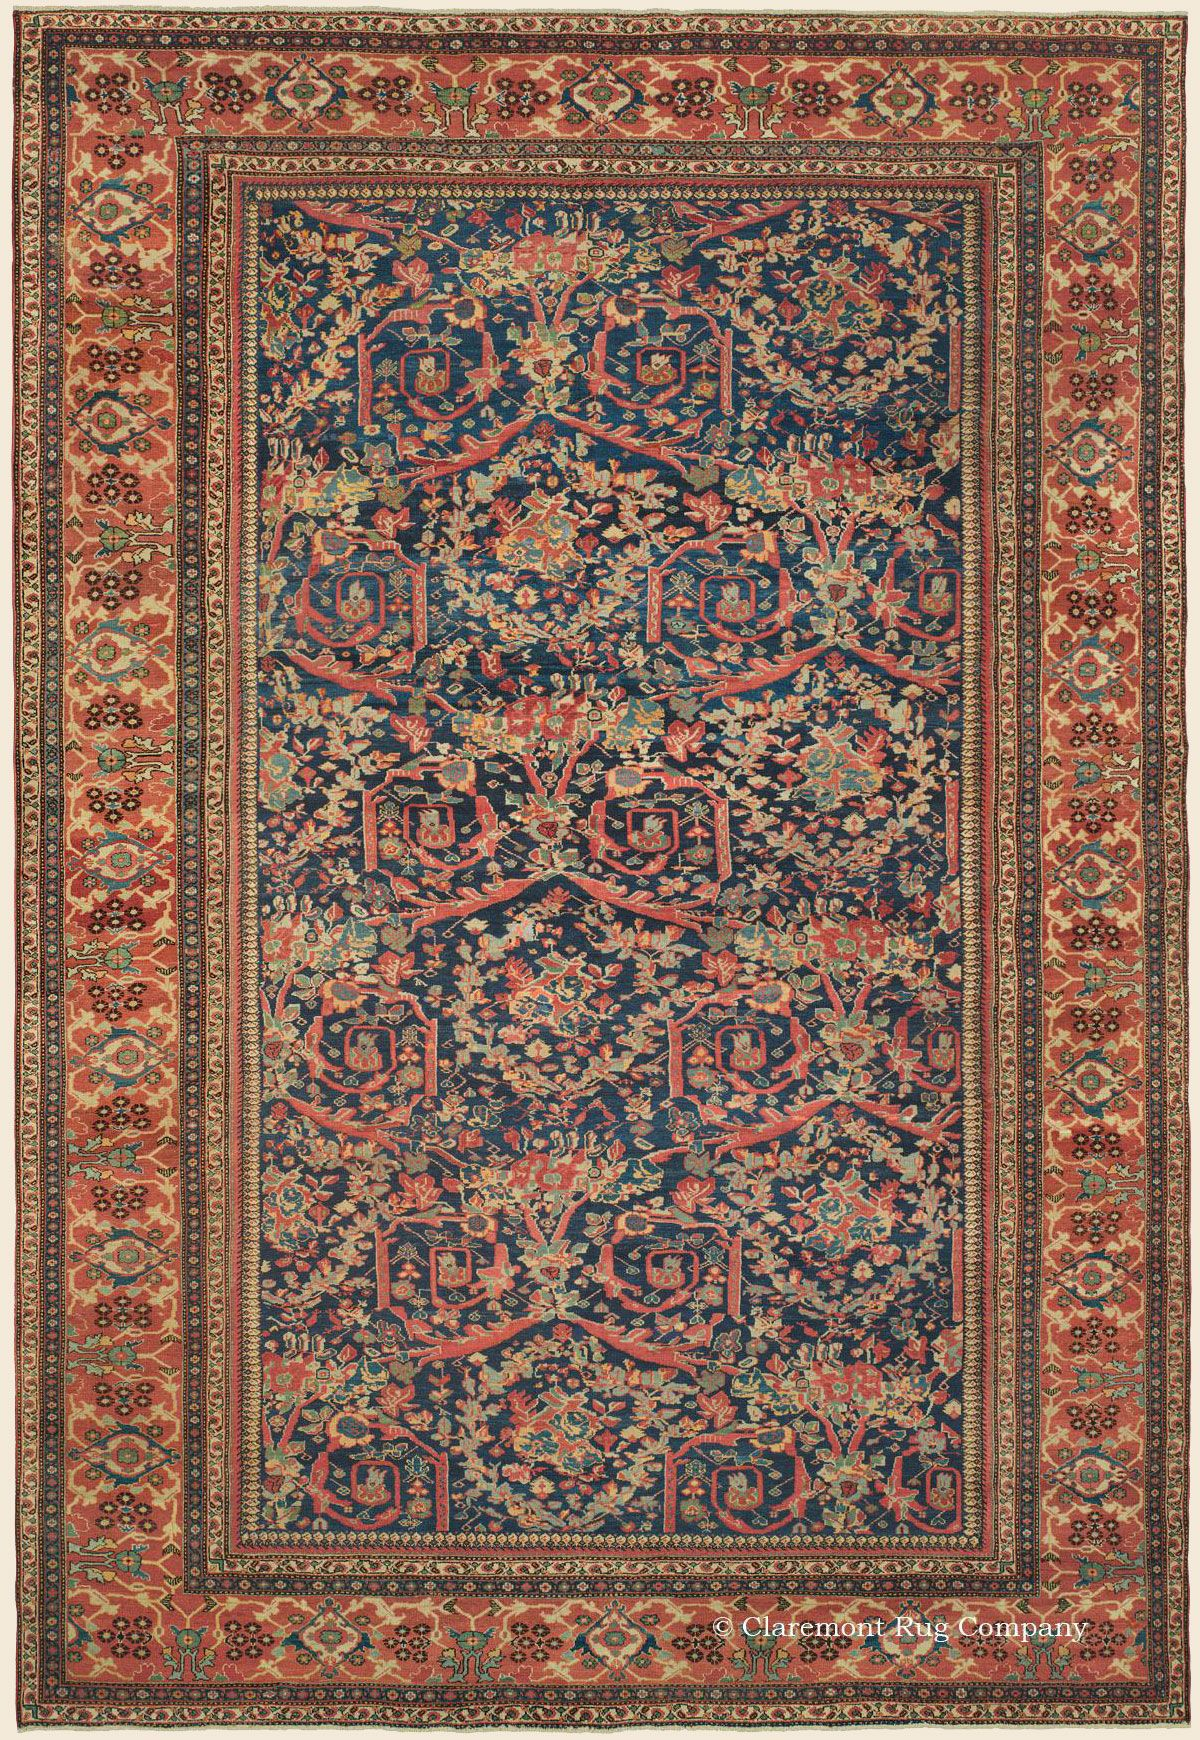 Sultanabad 12 3 X 18 4 Circa 1875 West Central Persian Antique Rug Claremont Rug Company Antique Persian Carpet Rugs Rugs On Carpet